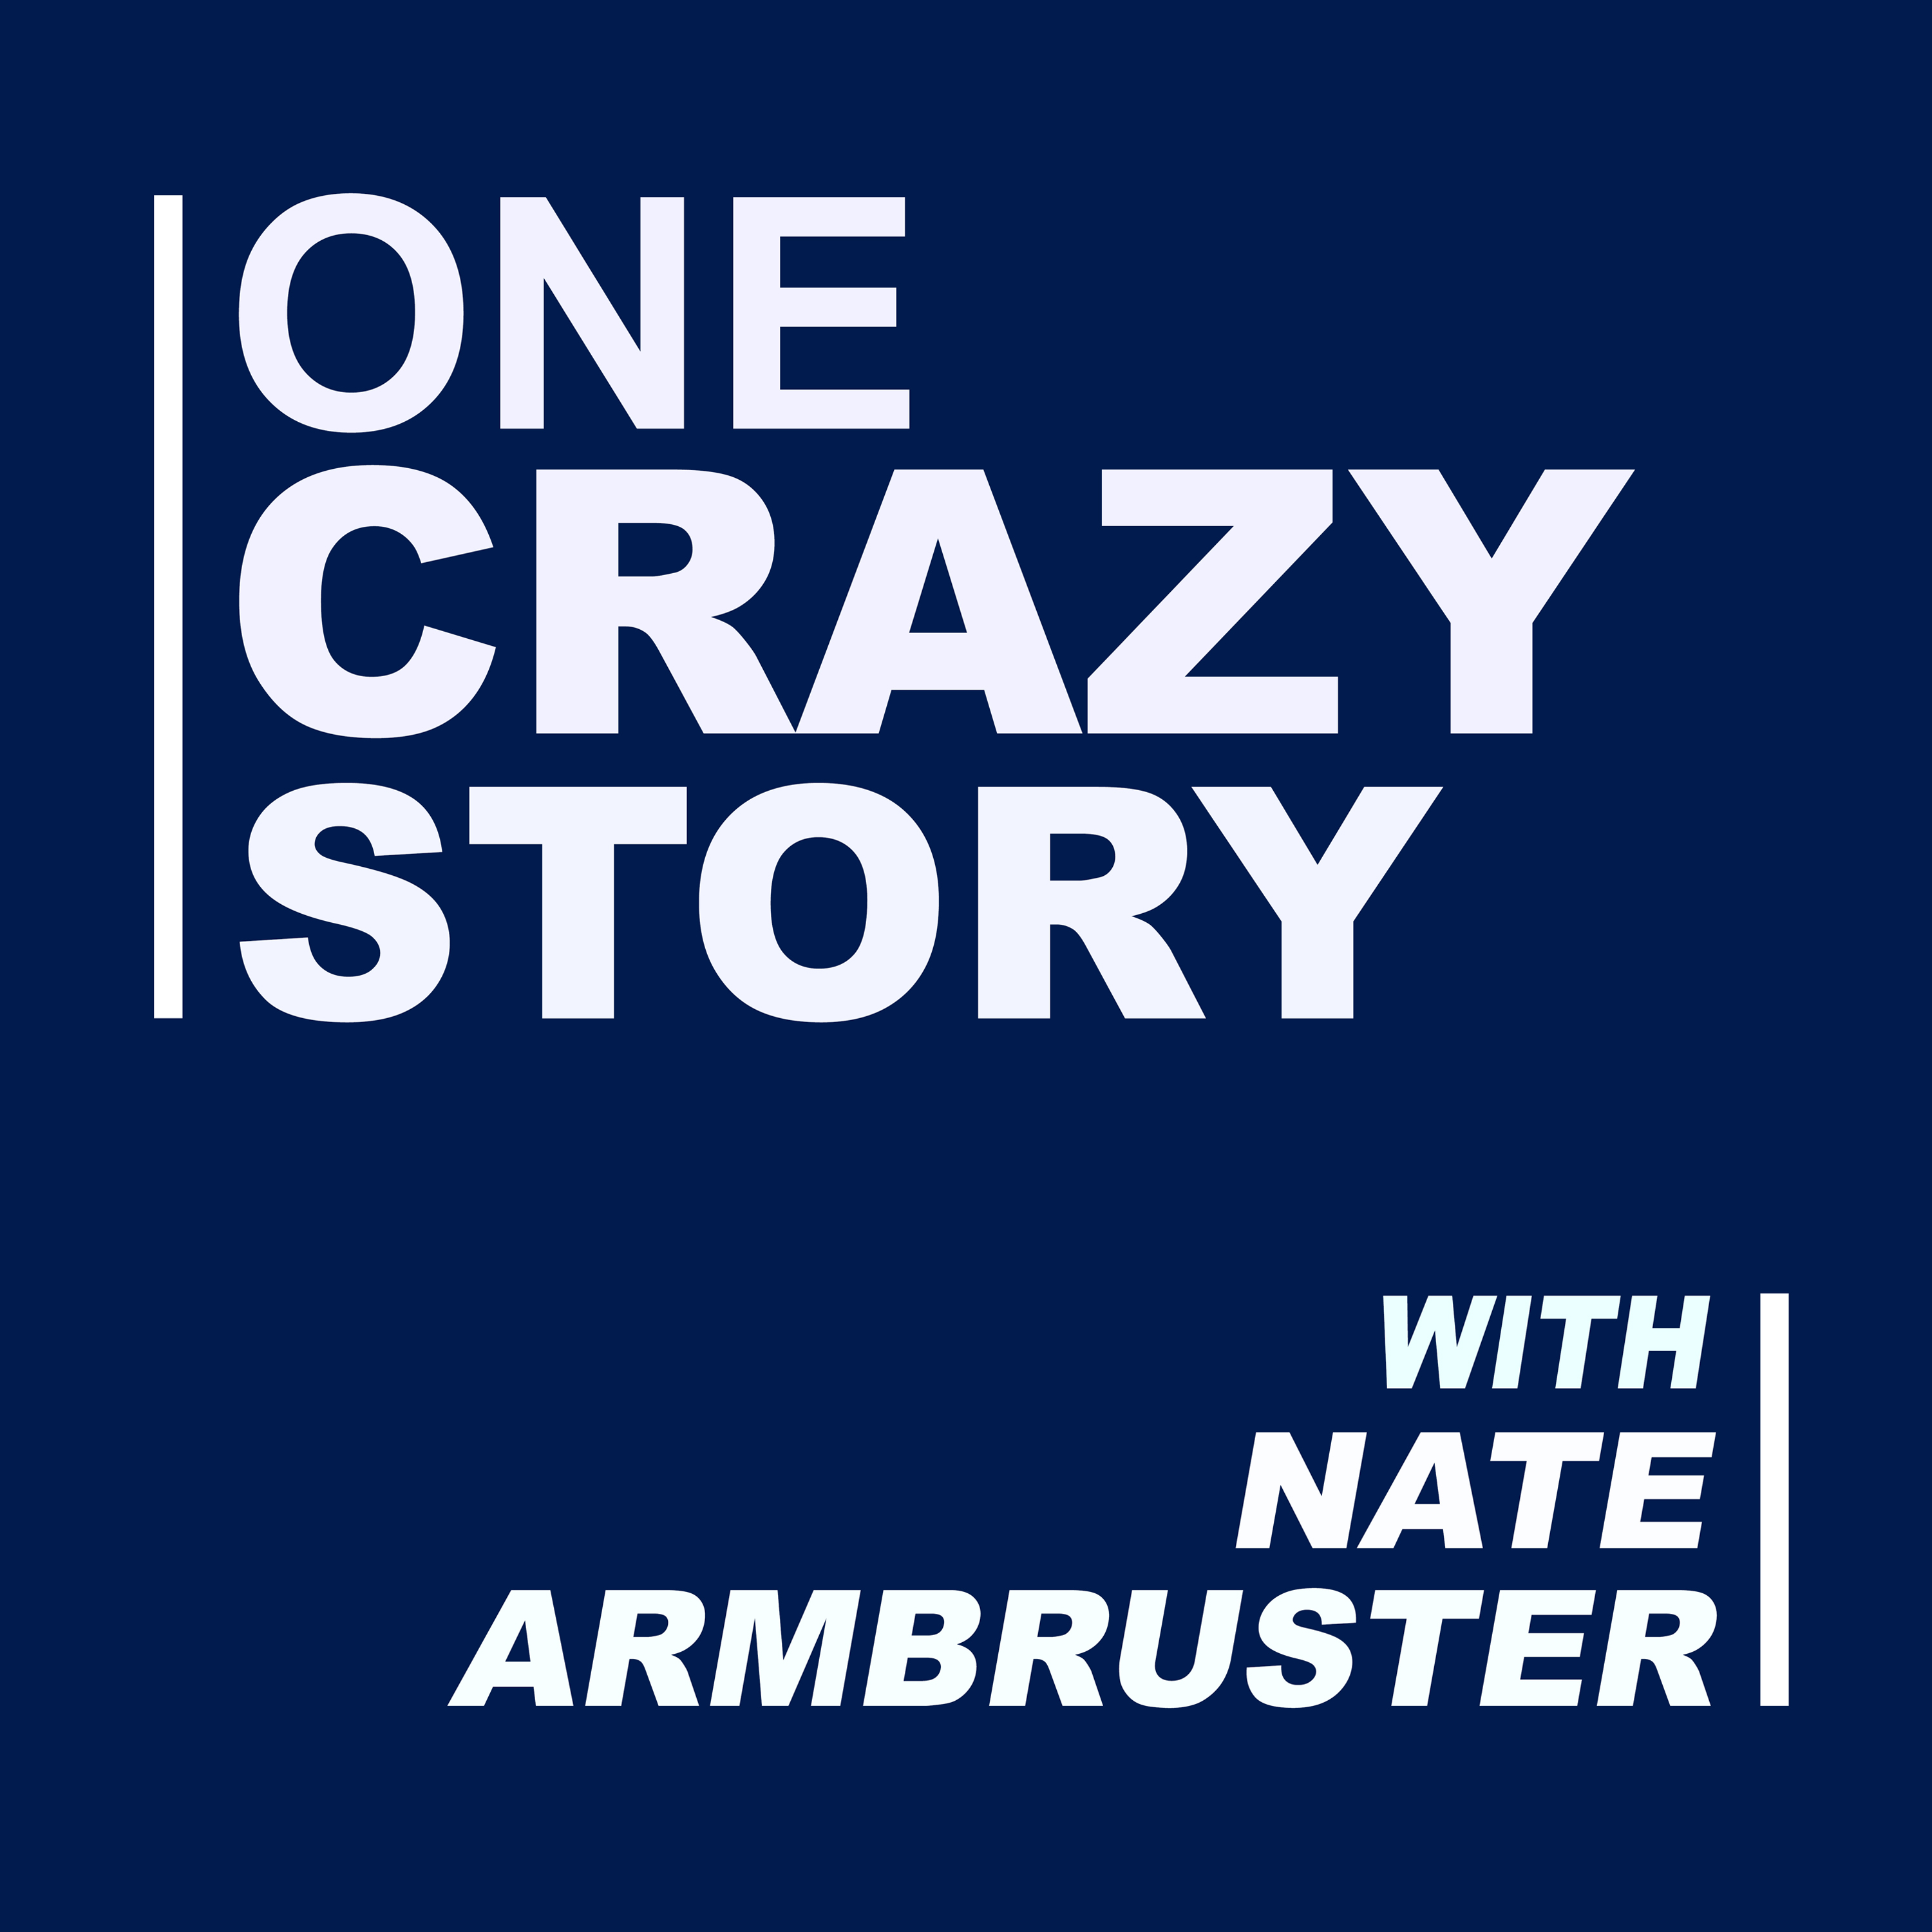 One Crazy Story with Nate Armbruster